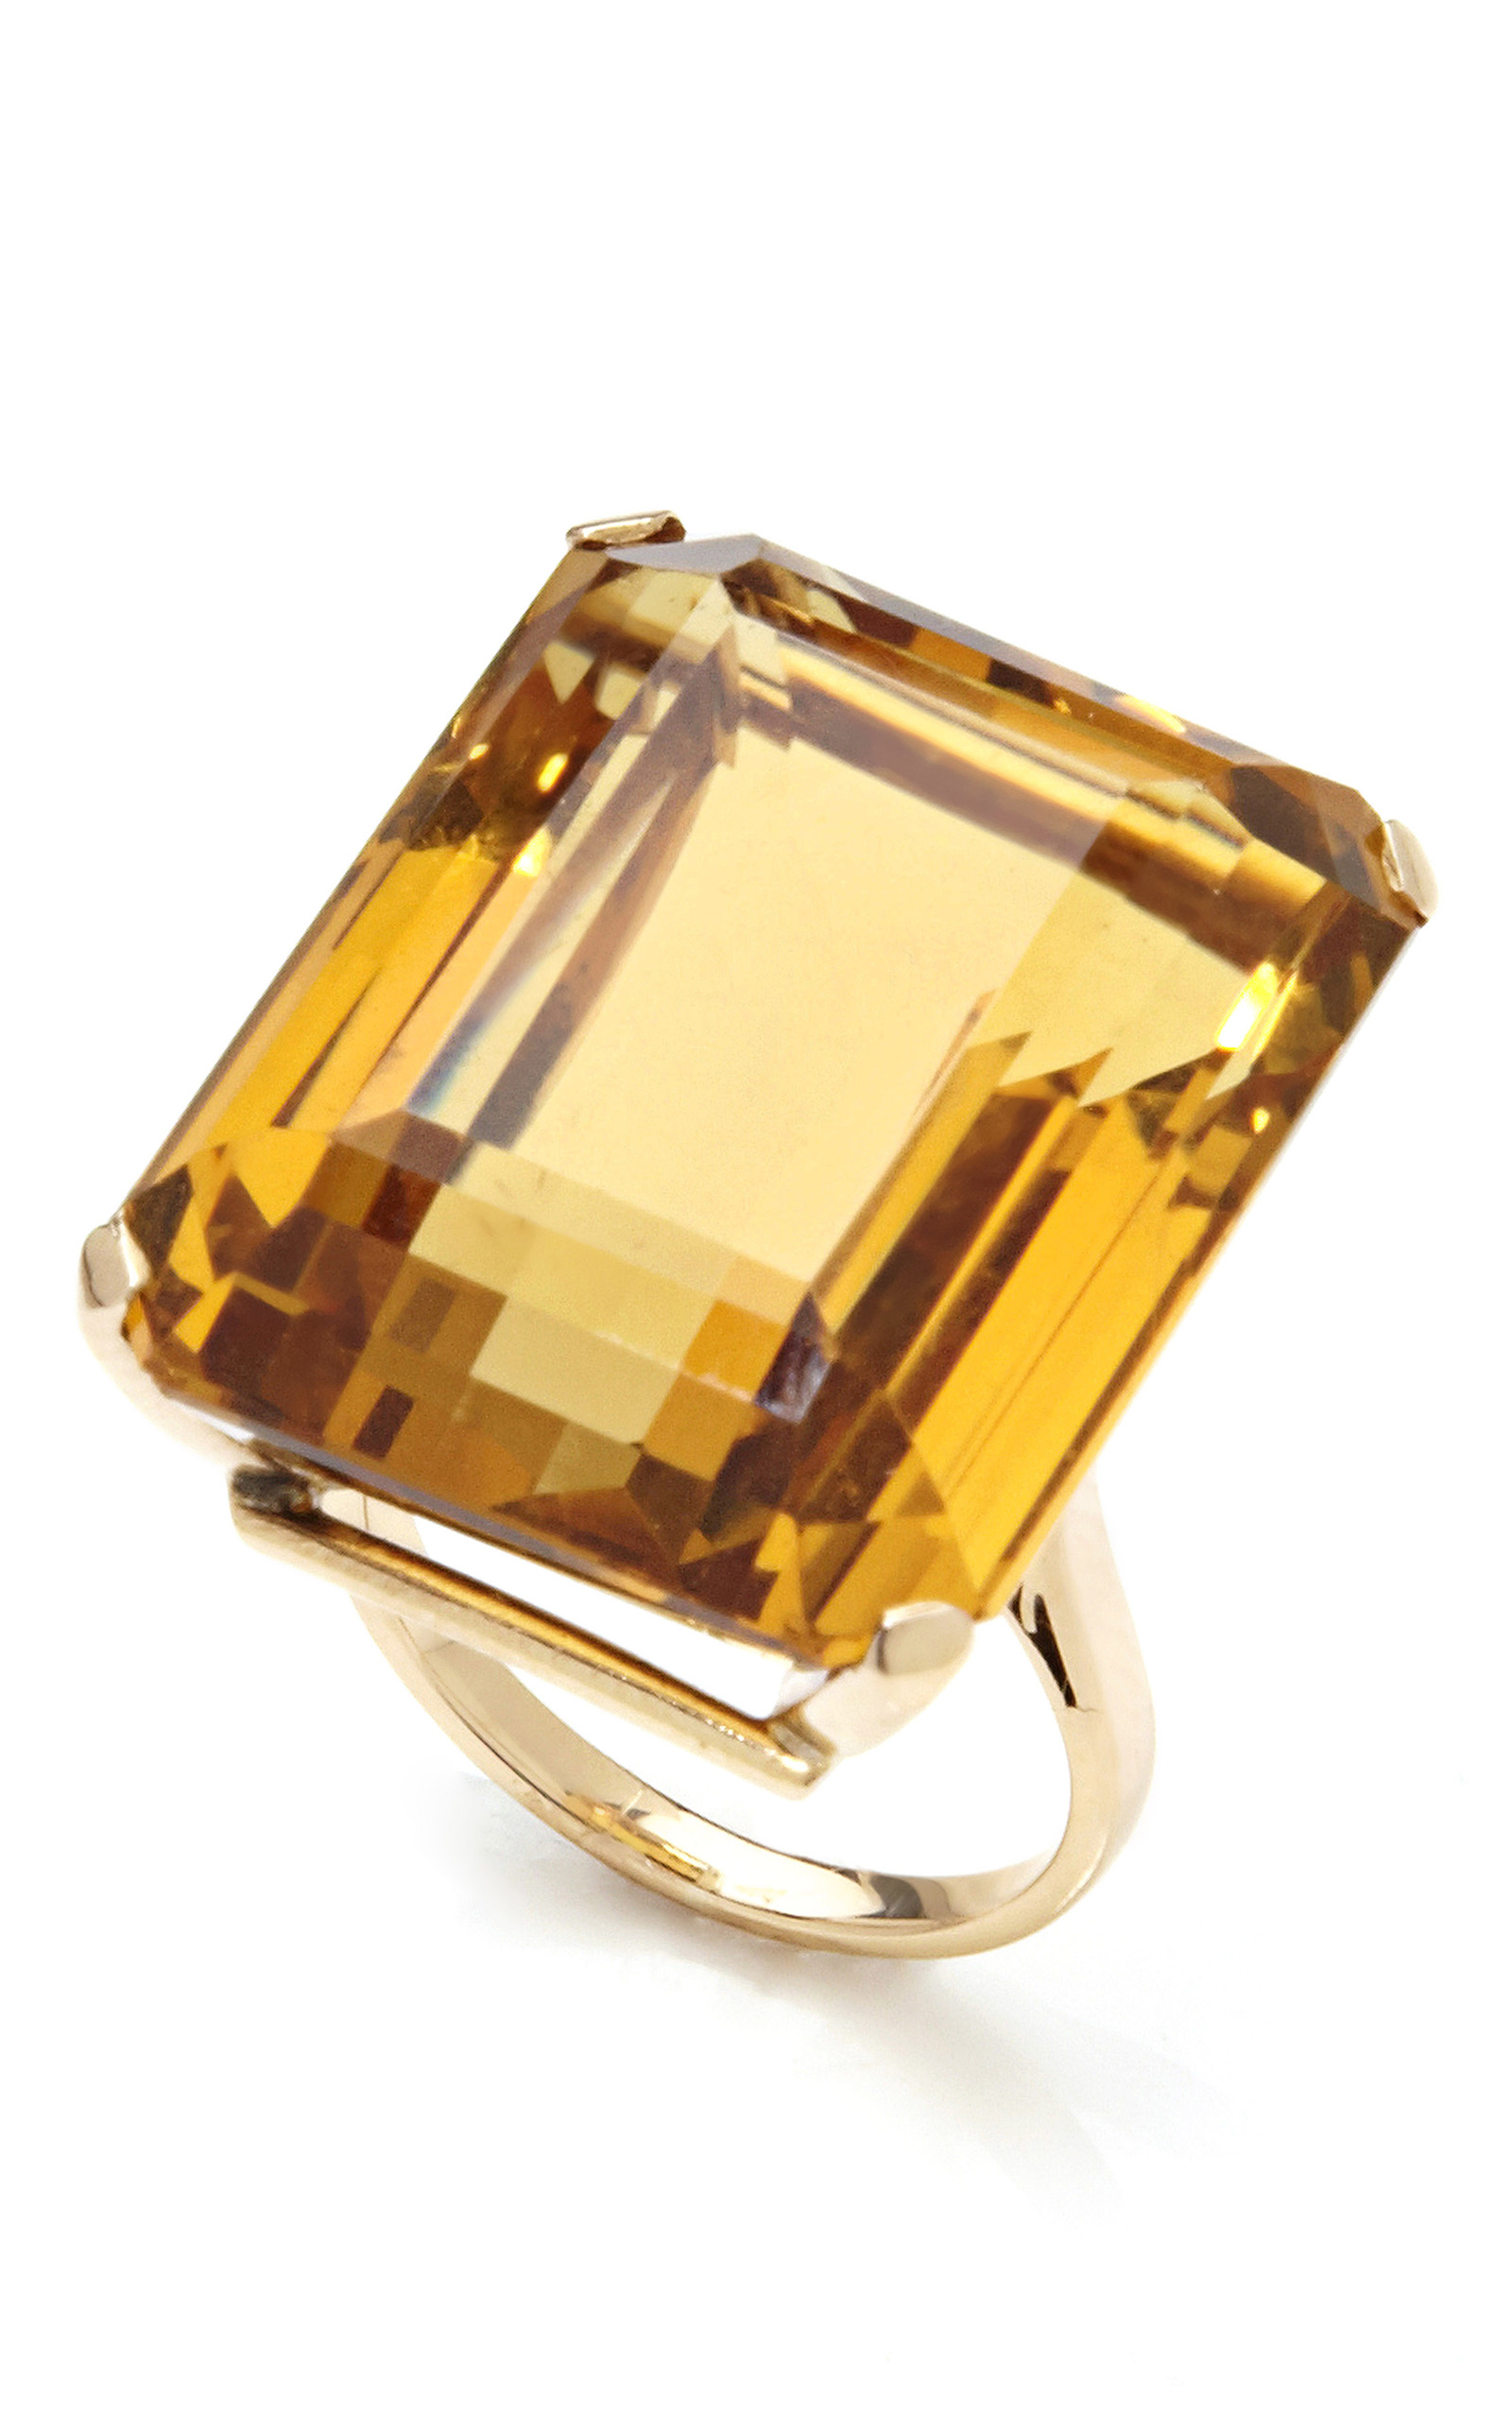 14k gold and citrine cocktail ring by tara compton moda